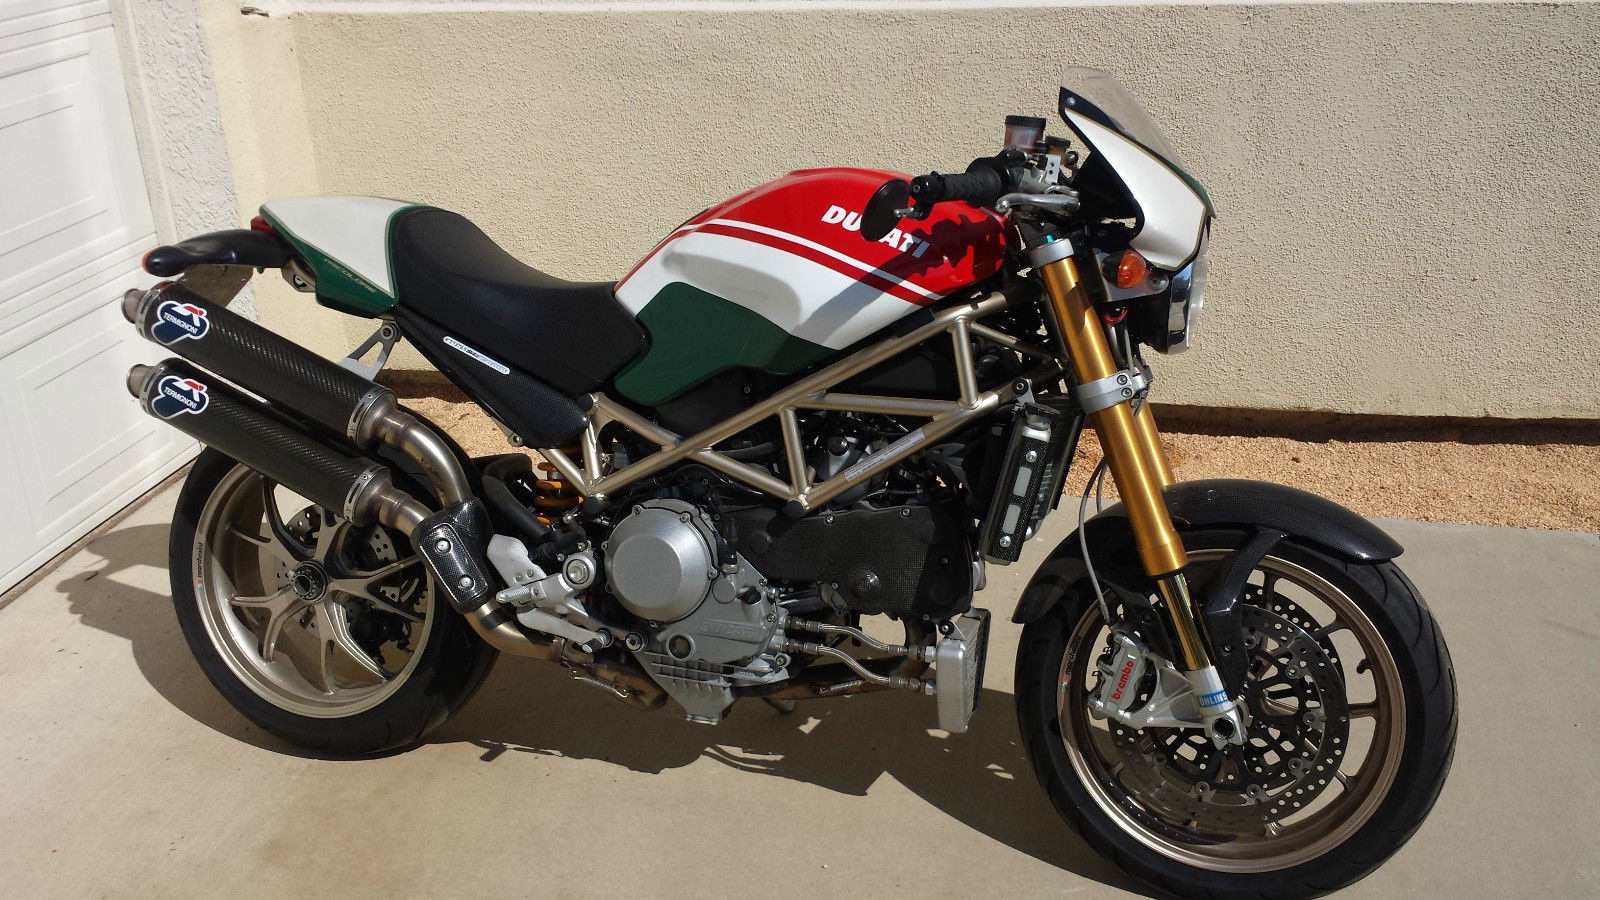 2008 ducati monster s4r s tricolore pics specs and. Black Bedroom Furniture Sets. Home Design Ideas